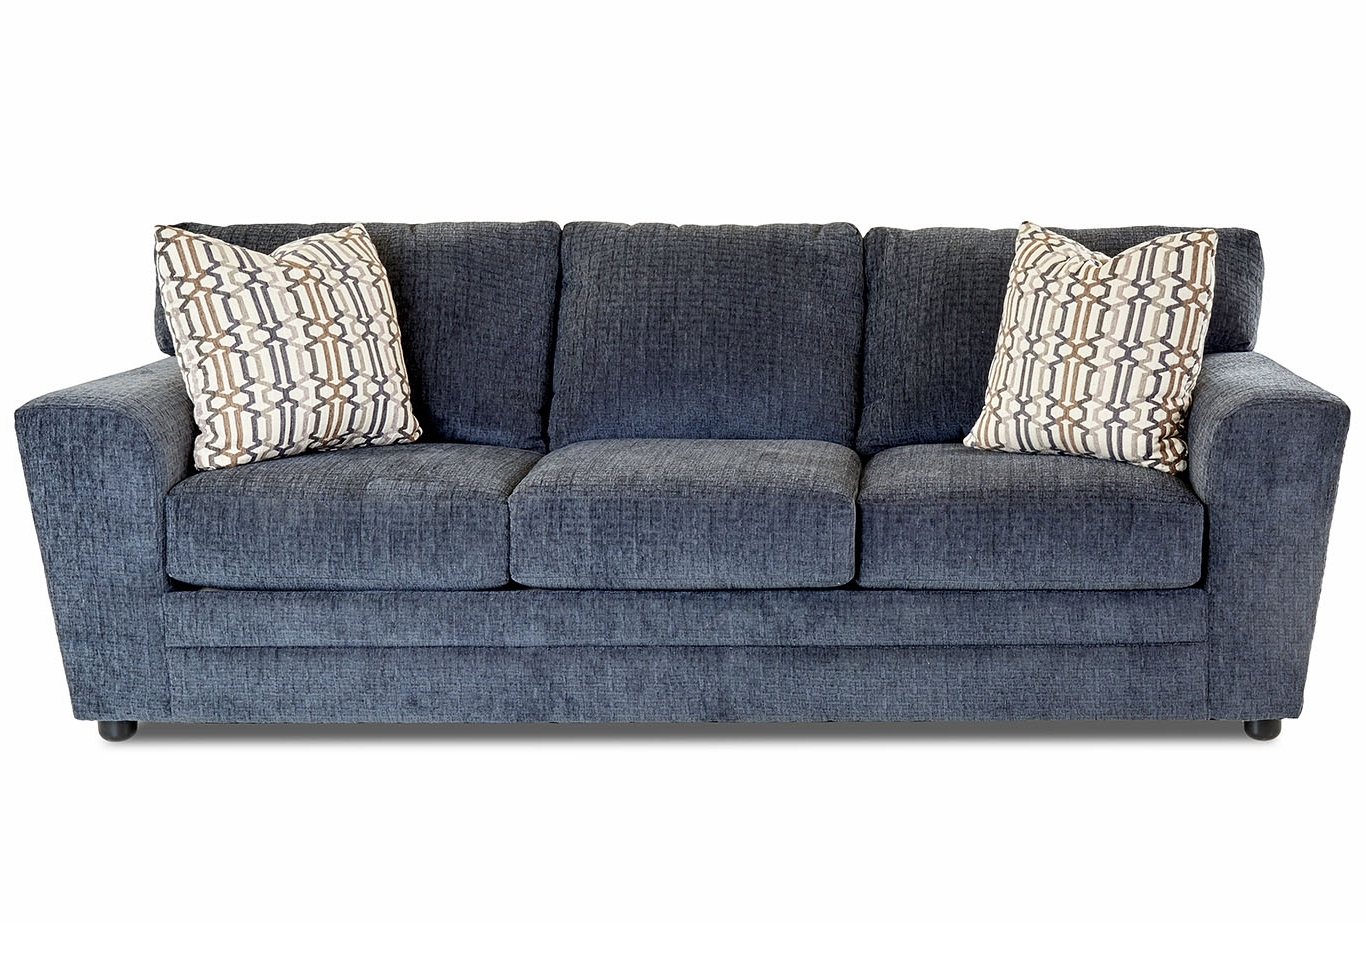 Most Recently Released Ashburn Cocktail Tables Within Signature Furniture – Nj Ashburn Fabric Sleeper Sofa (View 16 of 20)